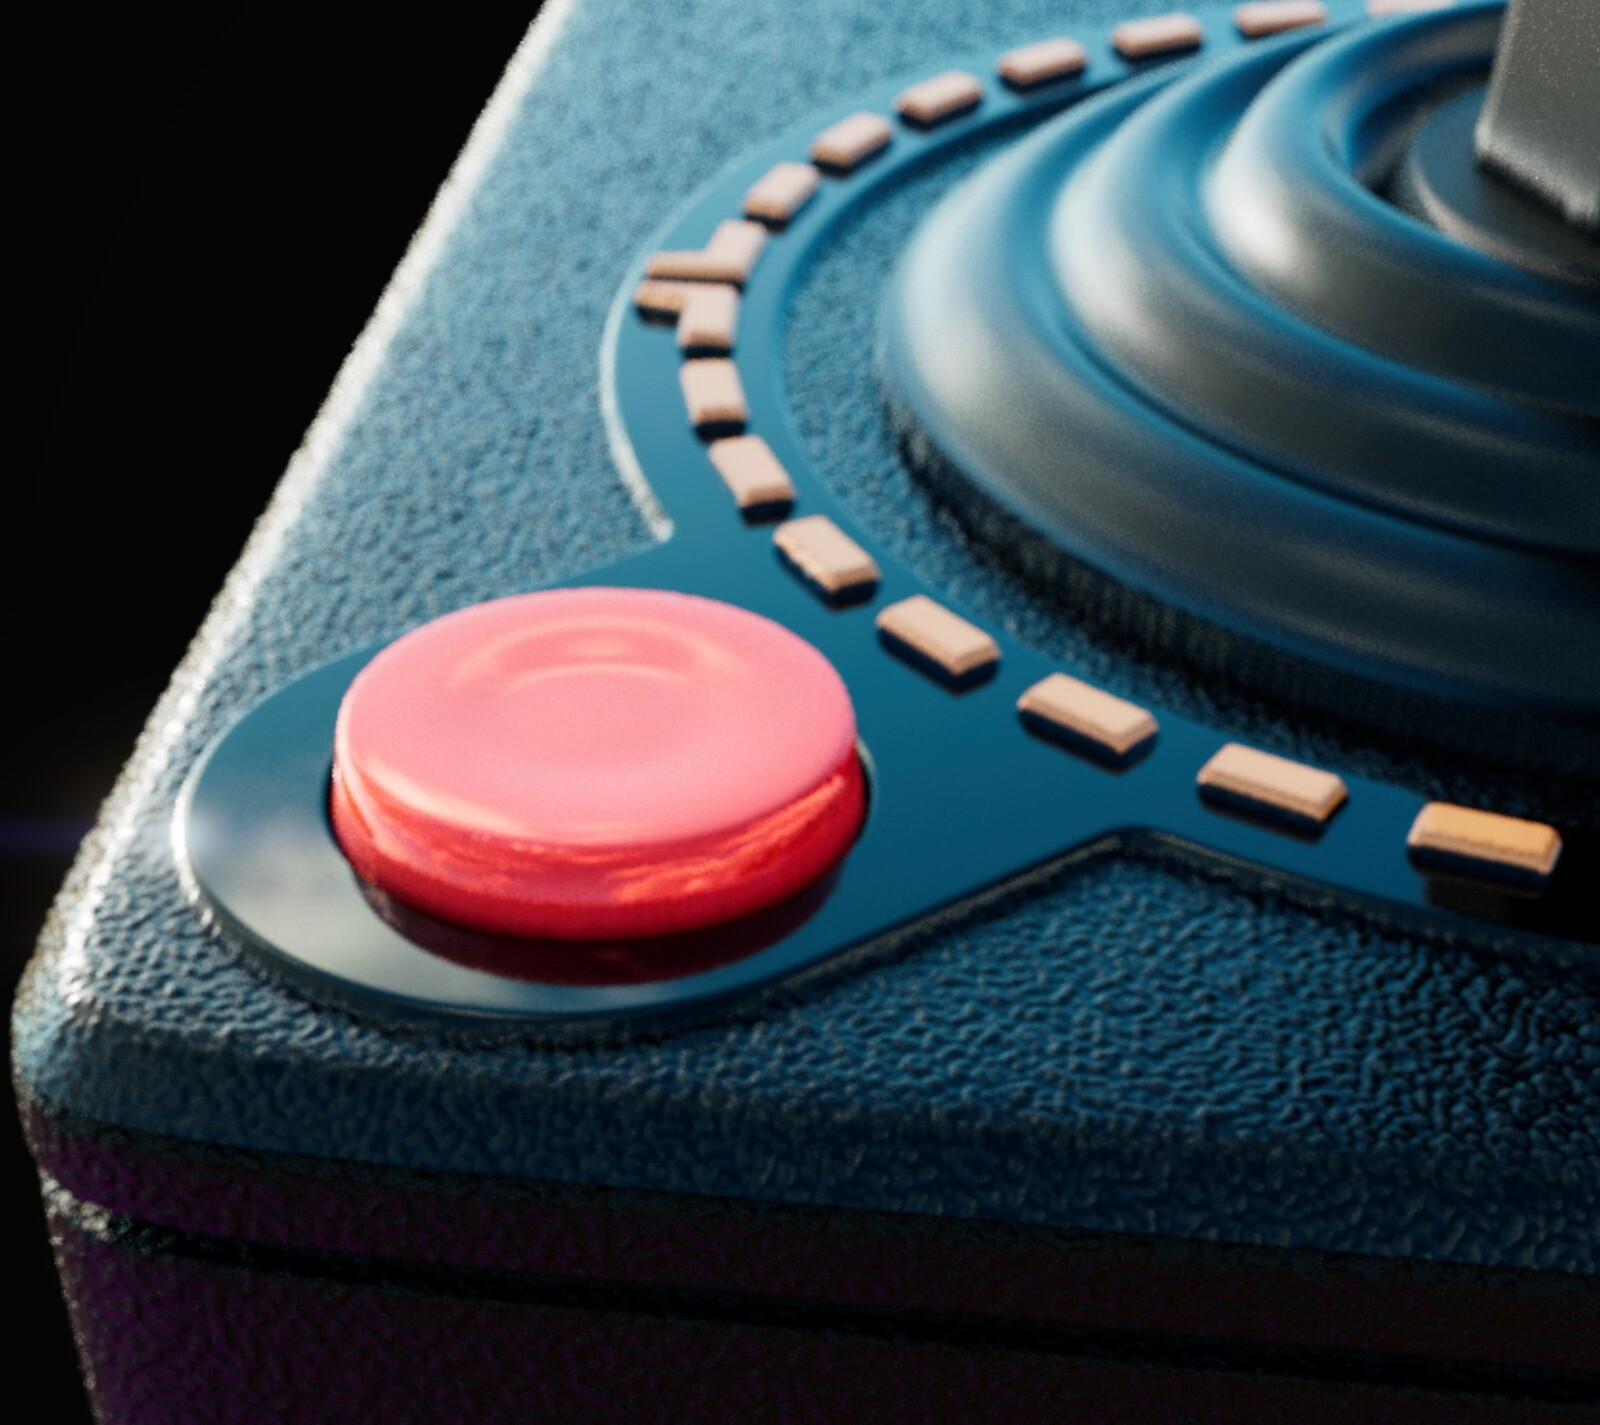 Rendered in Substance Designer. CloseUp